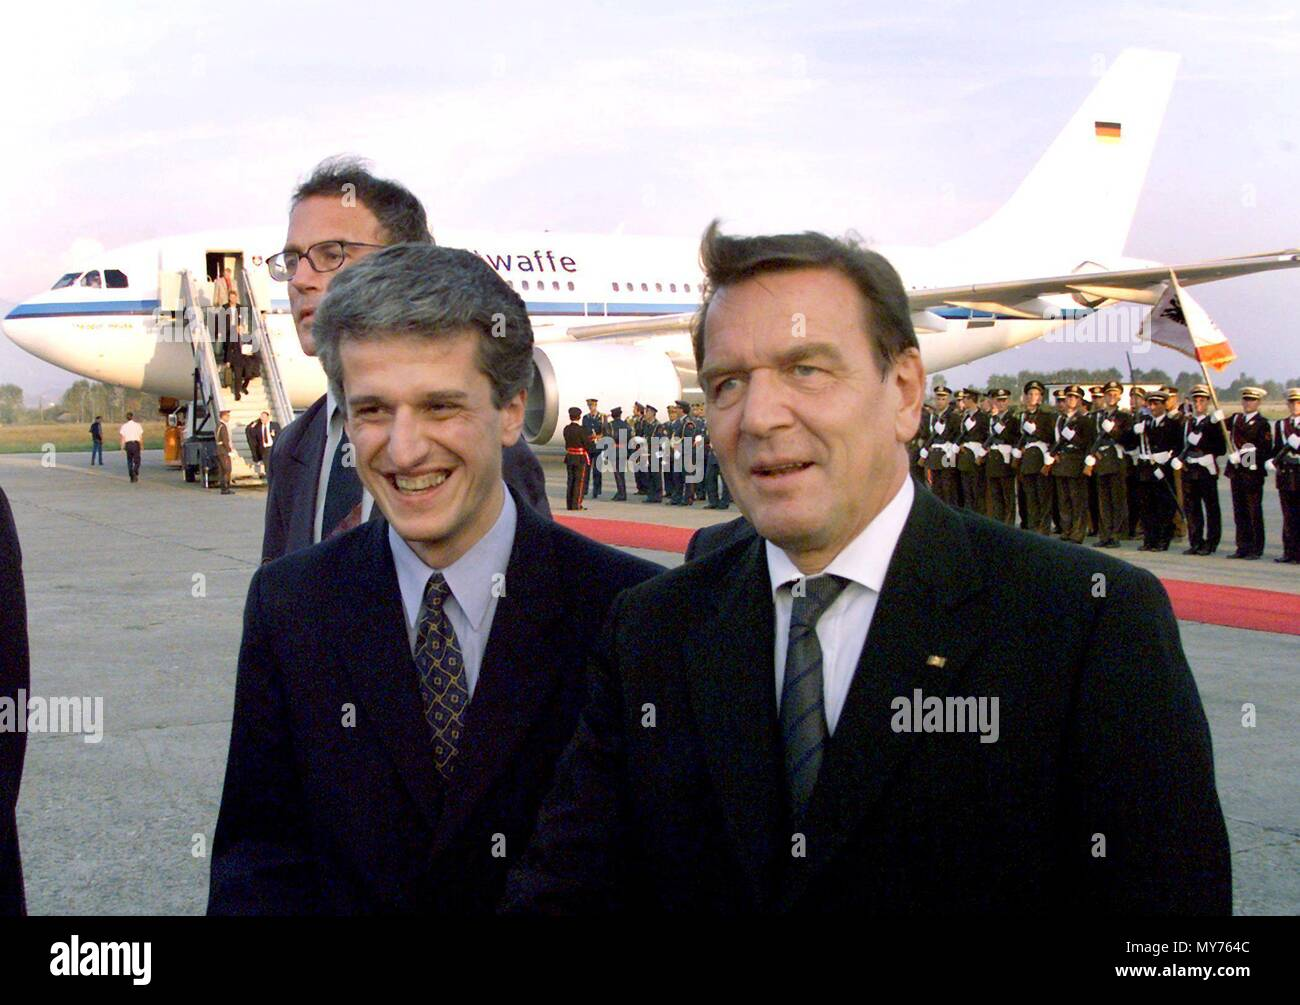 Albanian Prime Minister Pandeli Majko (L) greets German Chancellor Gerhard Schroeder at the airport in Tirana, Albania, on 22 September 1999.    usage worldwide - Stock Image